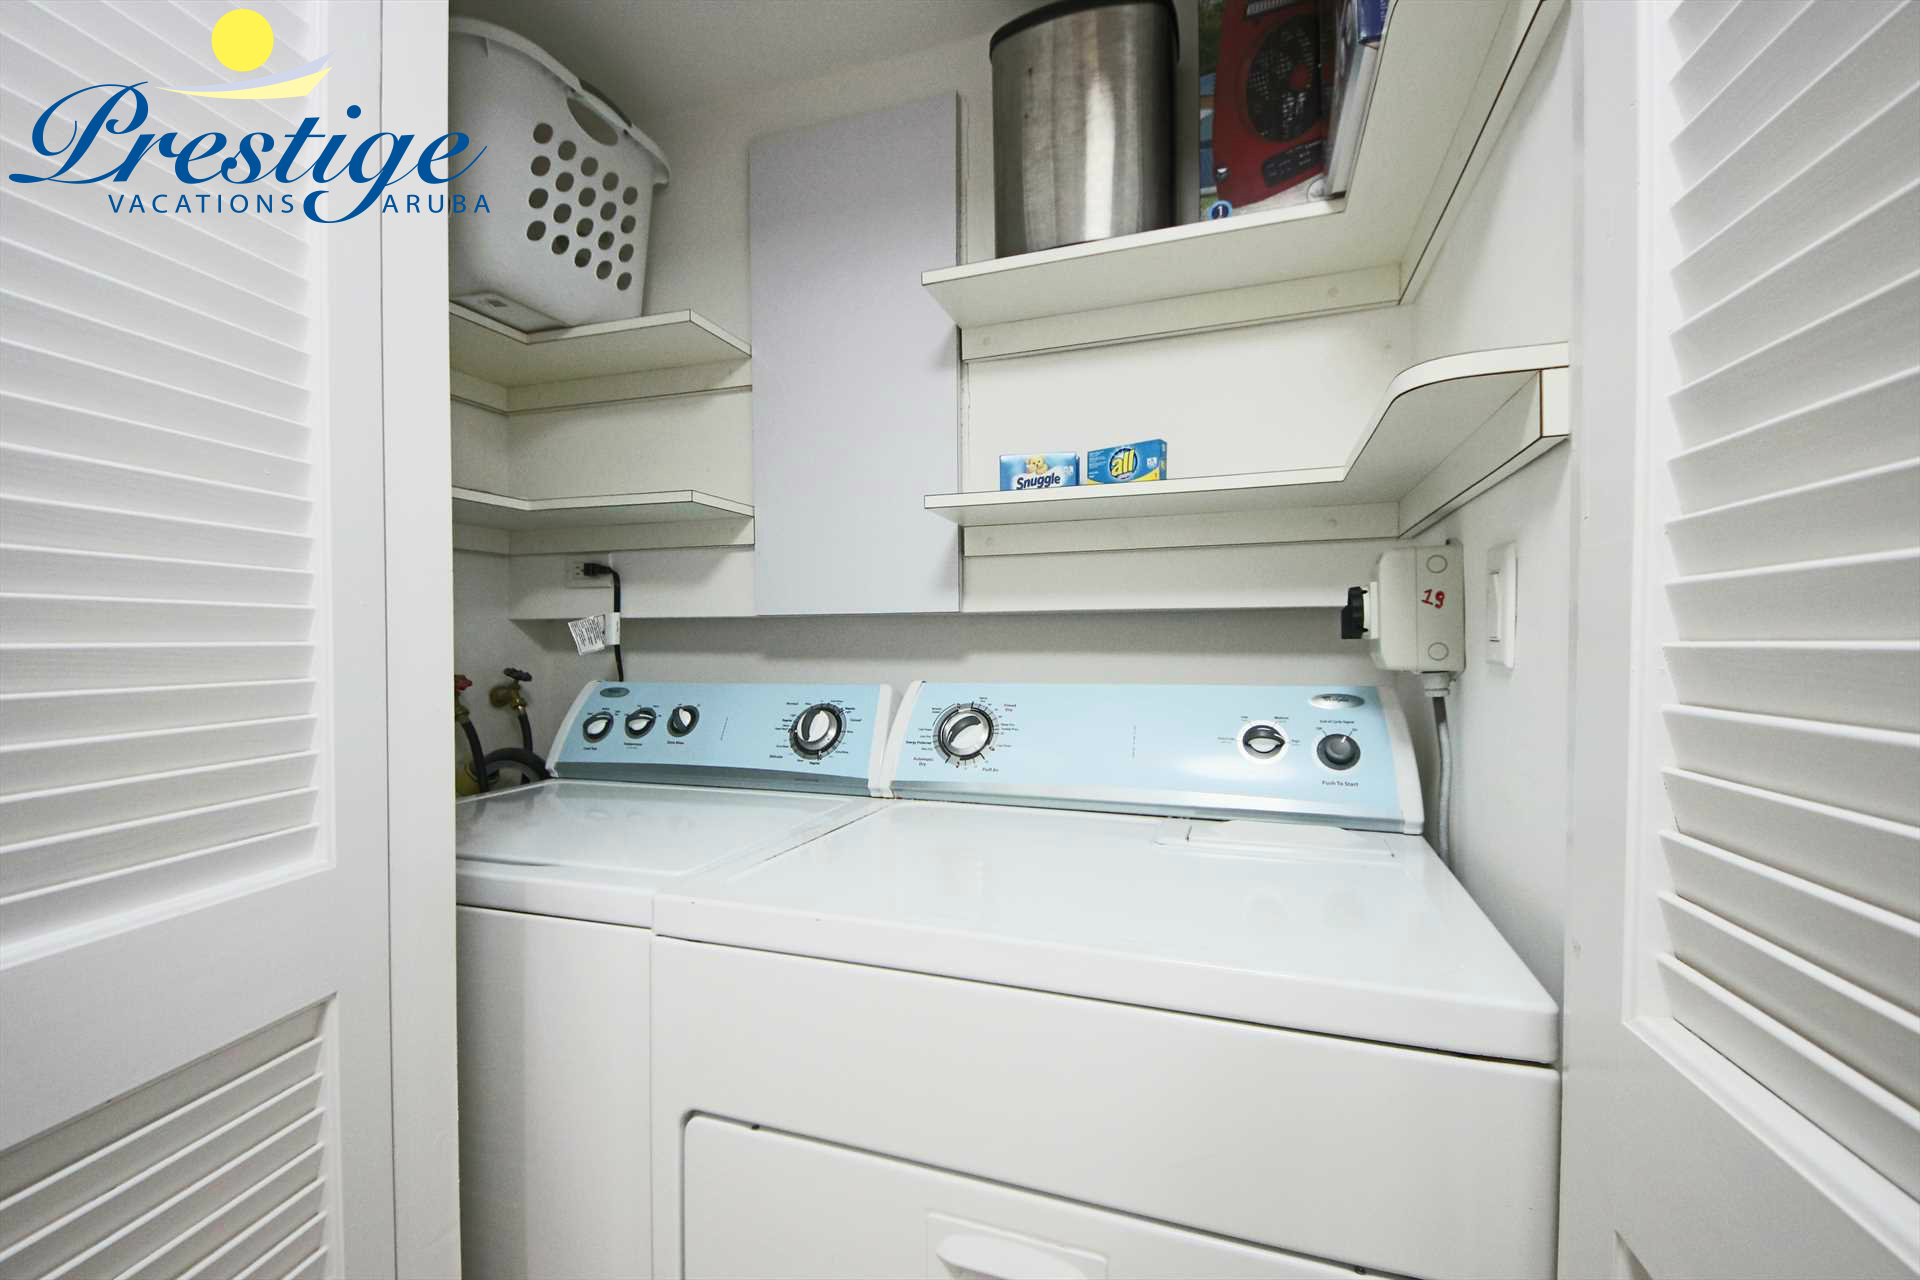 The laundry closet with washer/dryer